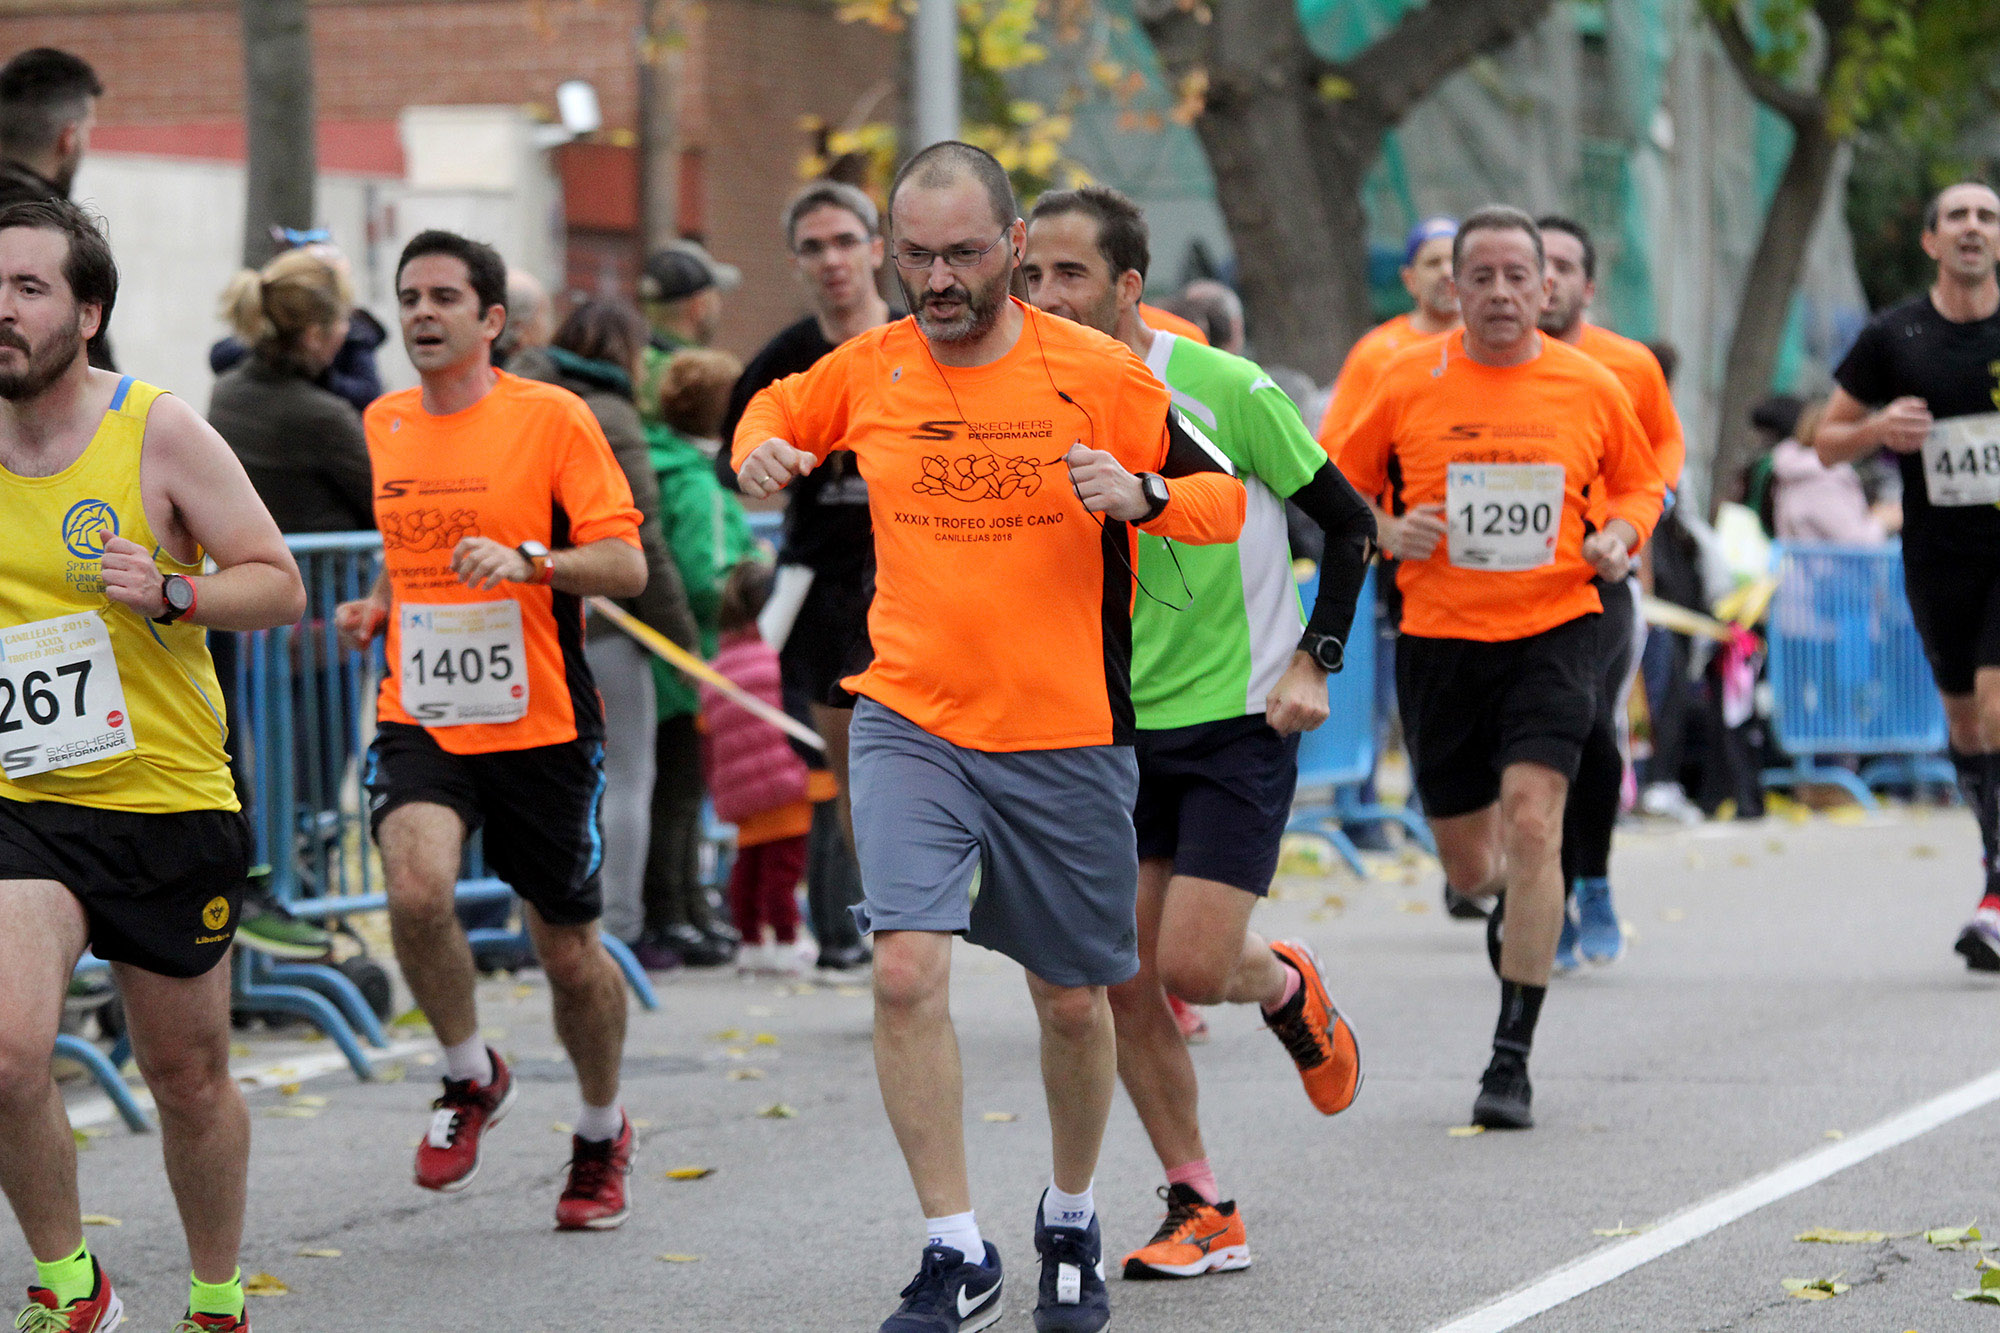 Carrera Popular de Canillejas